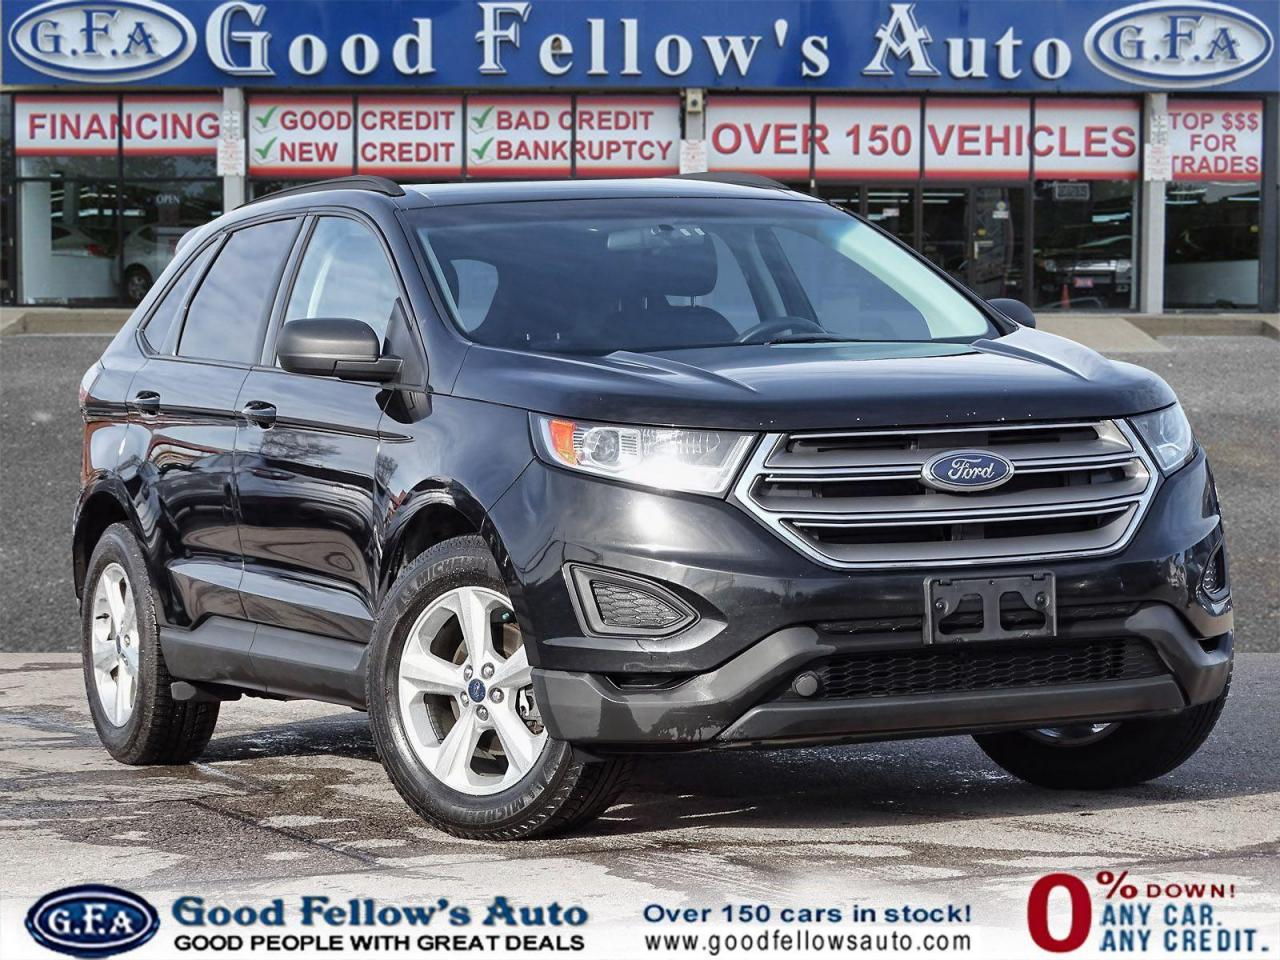 used 2017 Ford Edge car, priced at $15,400